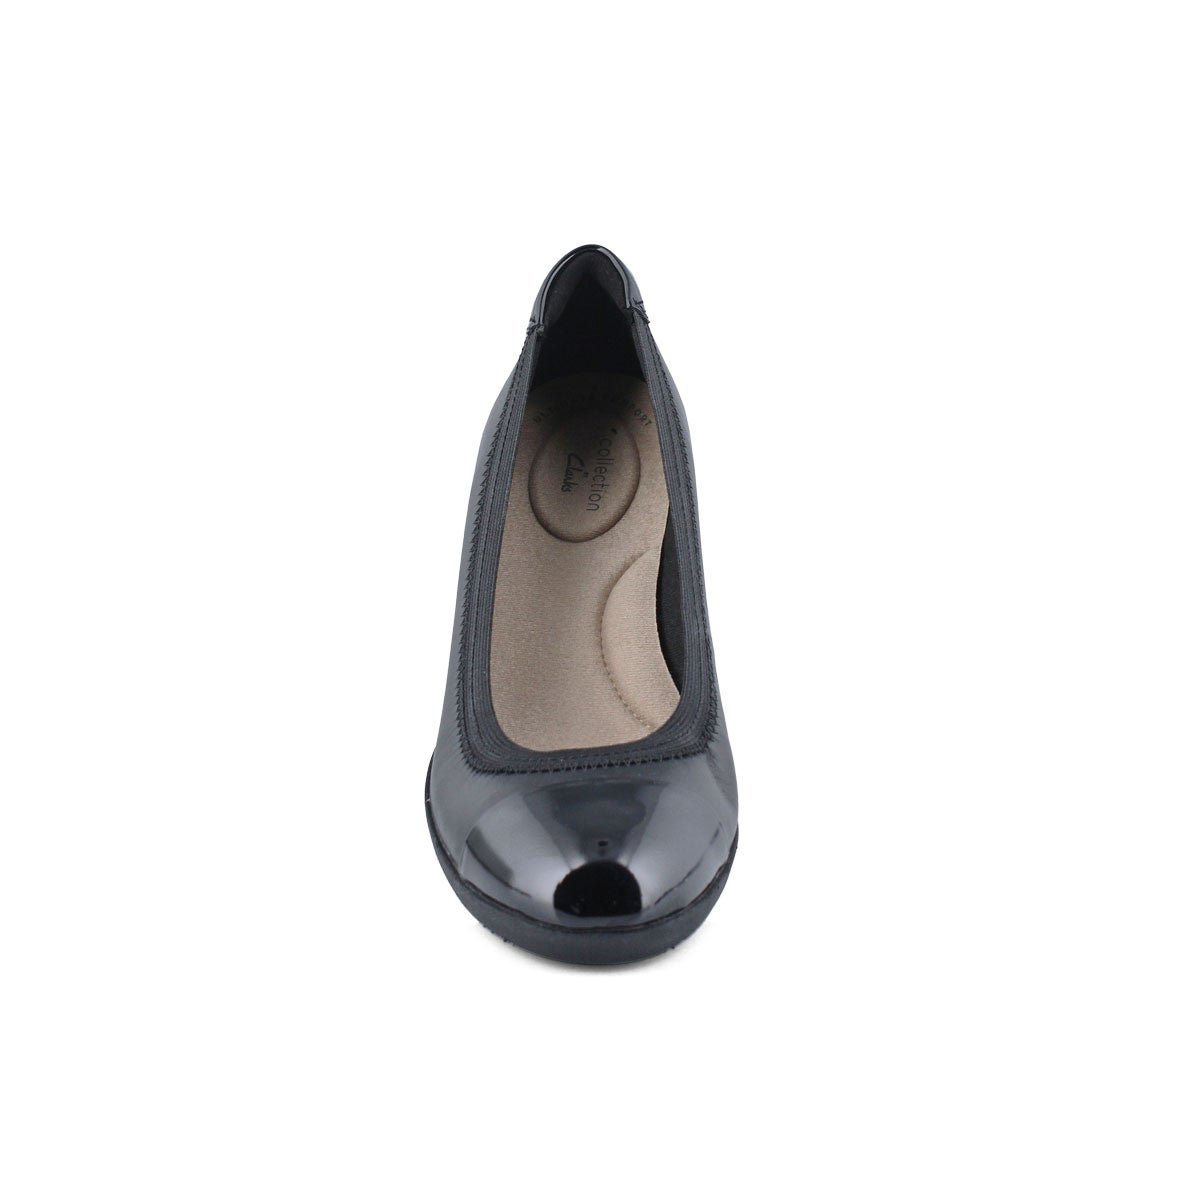 Lds Elin Palm black low dress wedge